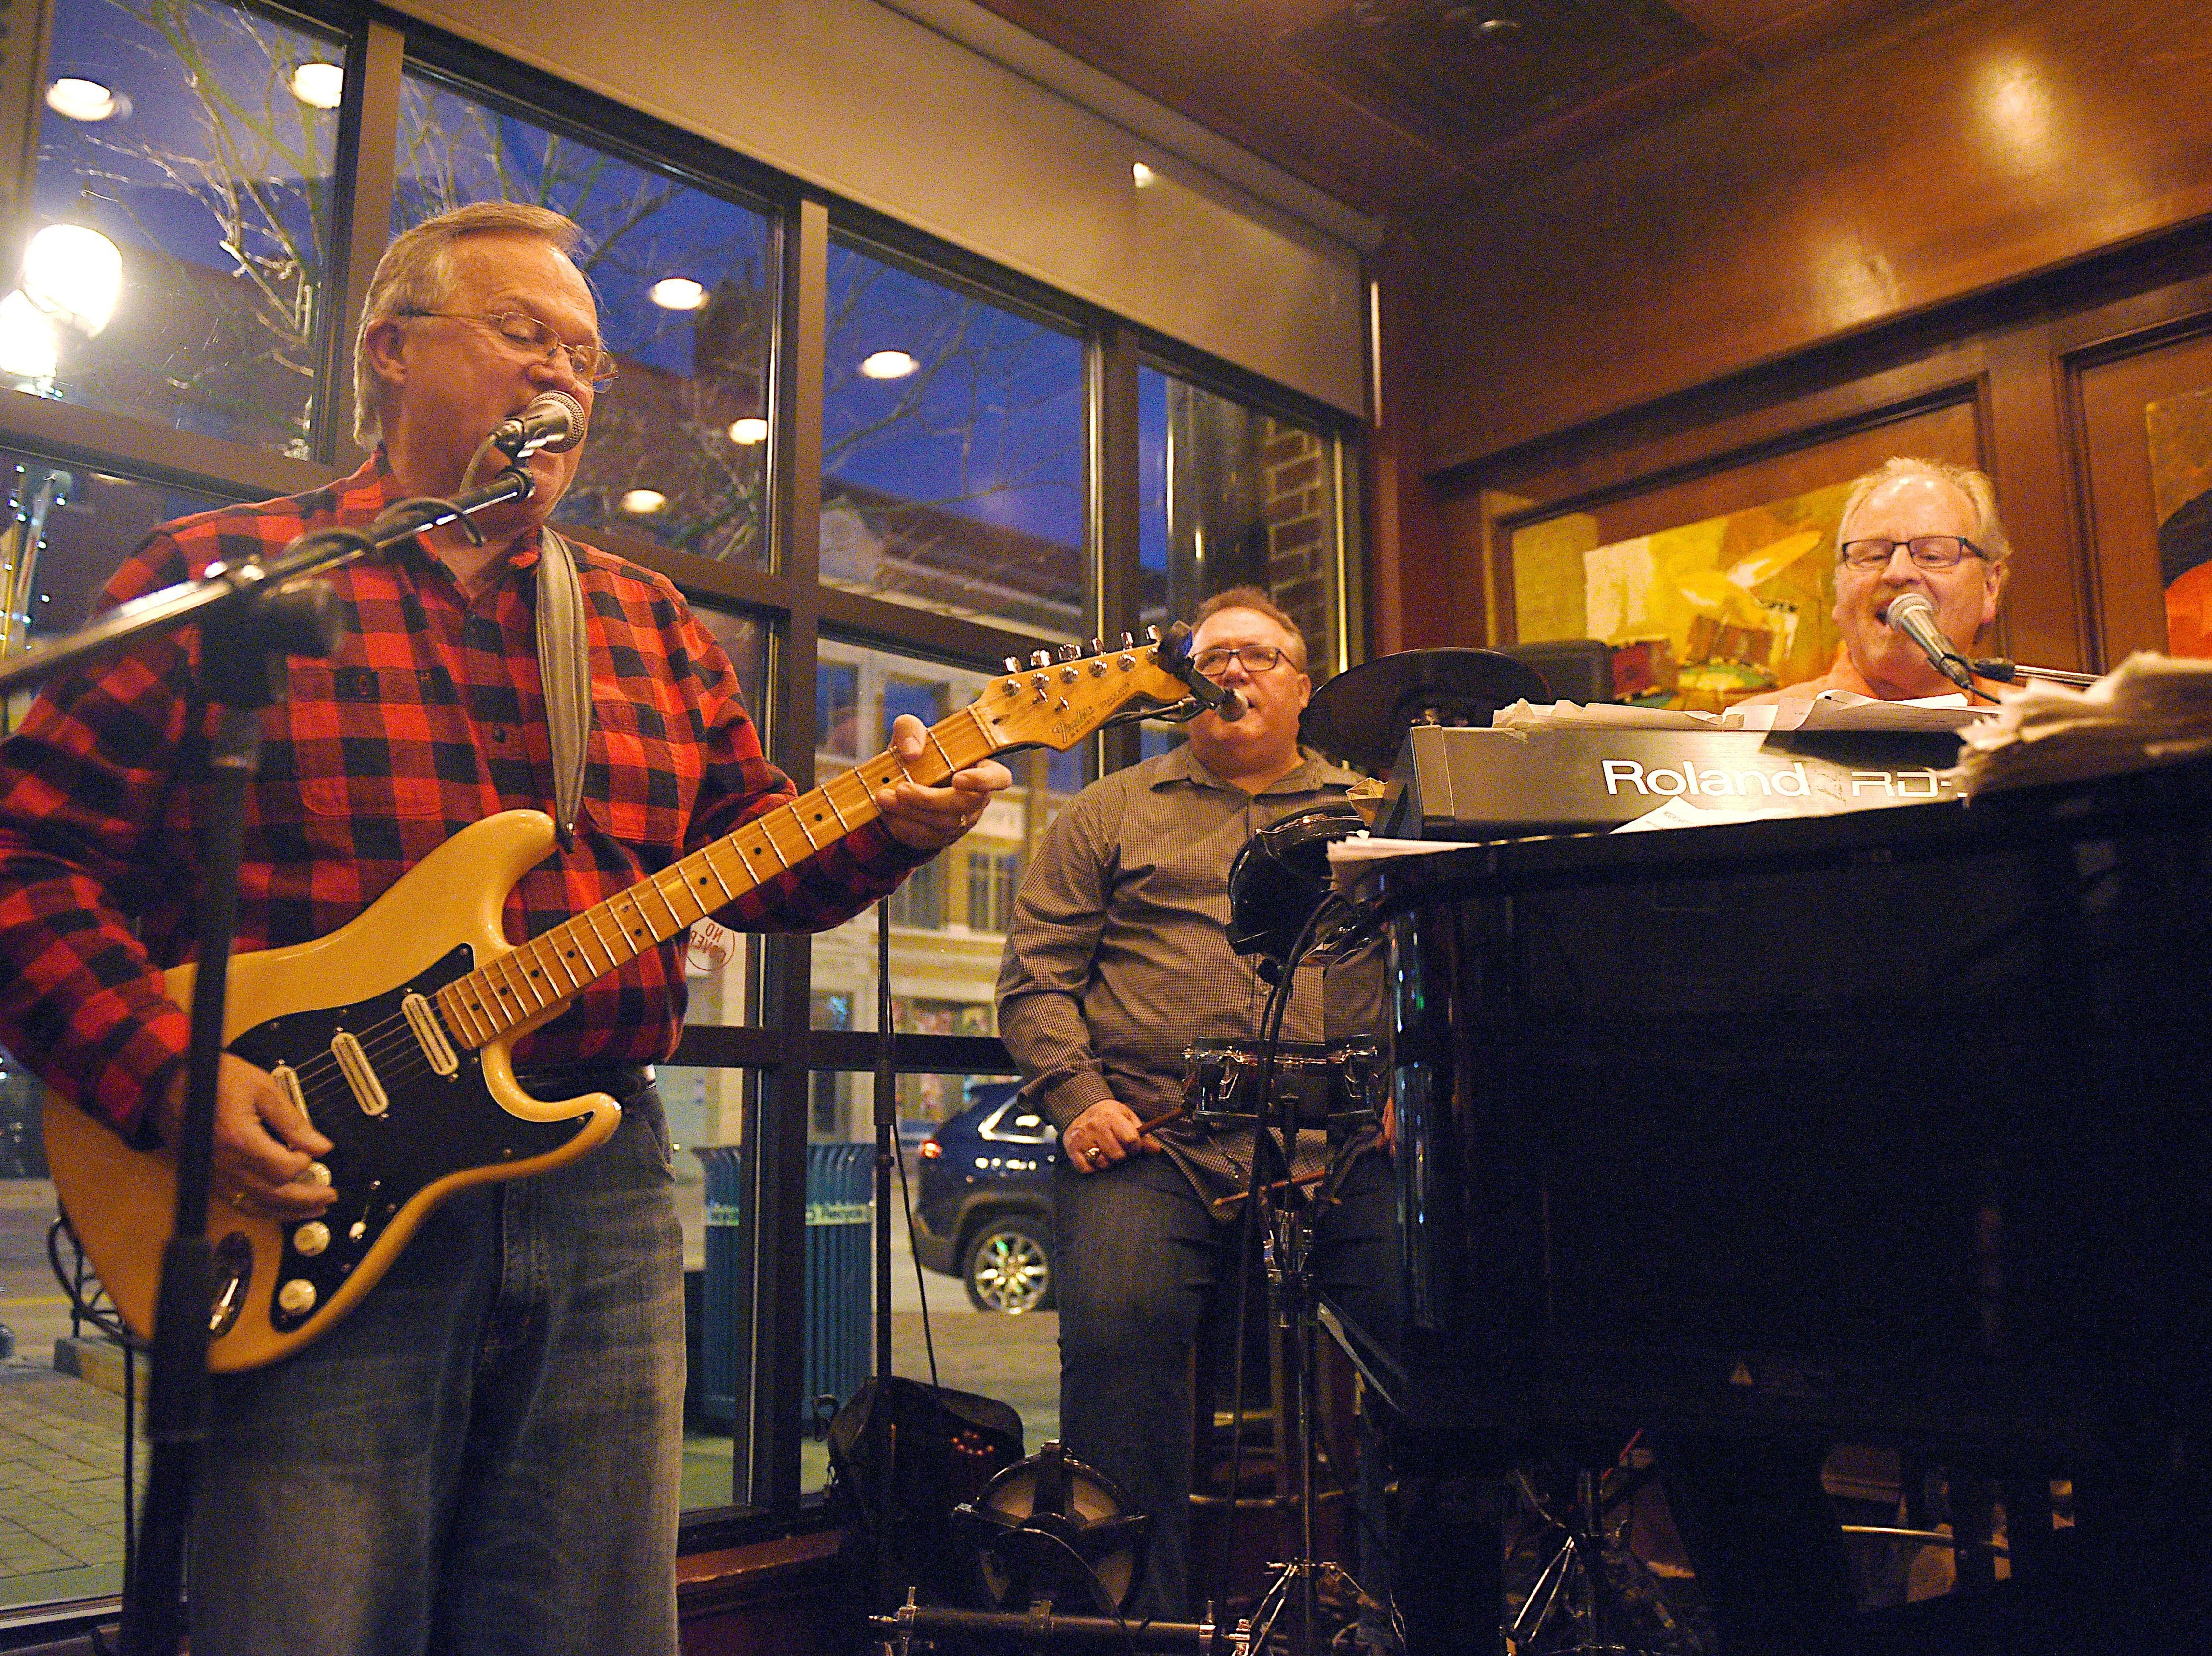 Denny Gale, Bill Hoffman and John Mogen of Mogen's Heroes perform at the Paramount Bar inside Minervas in downtown Sioux Falls on March 30, 2018.